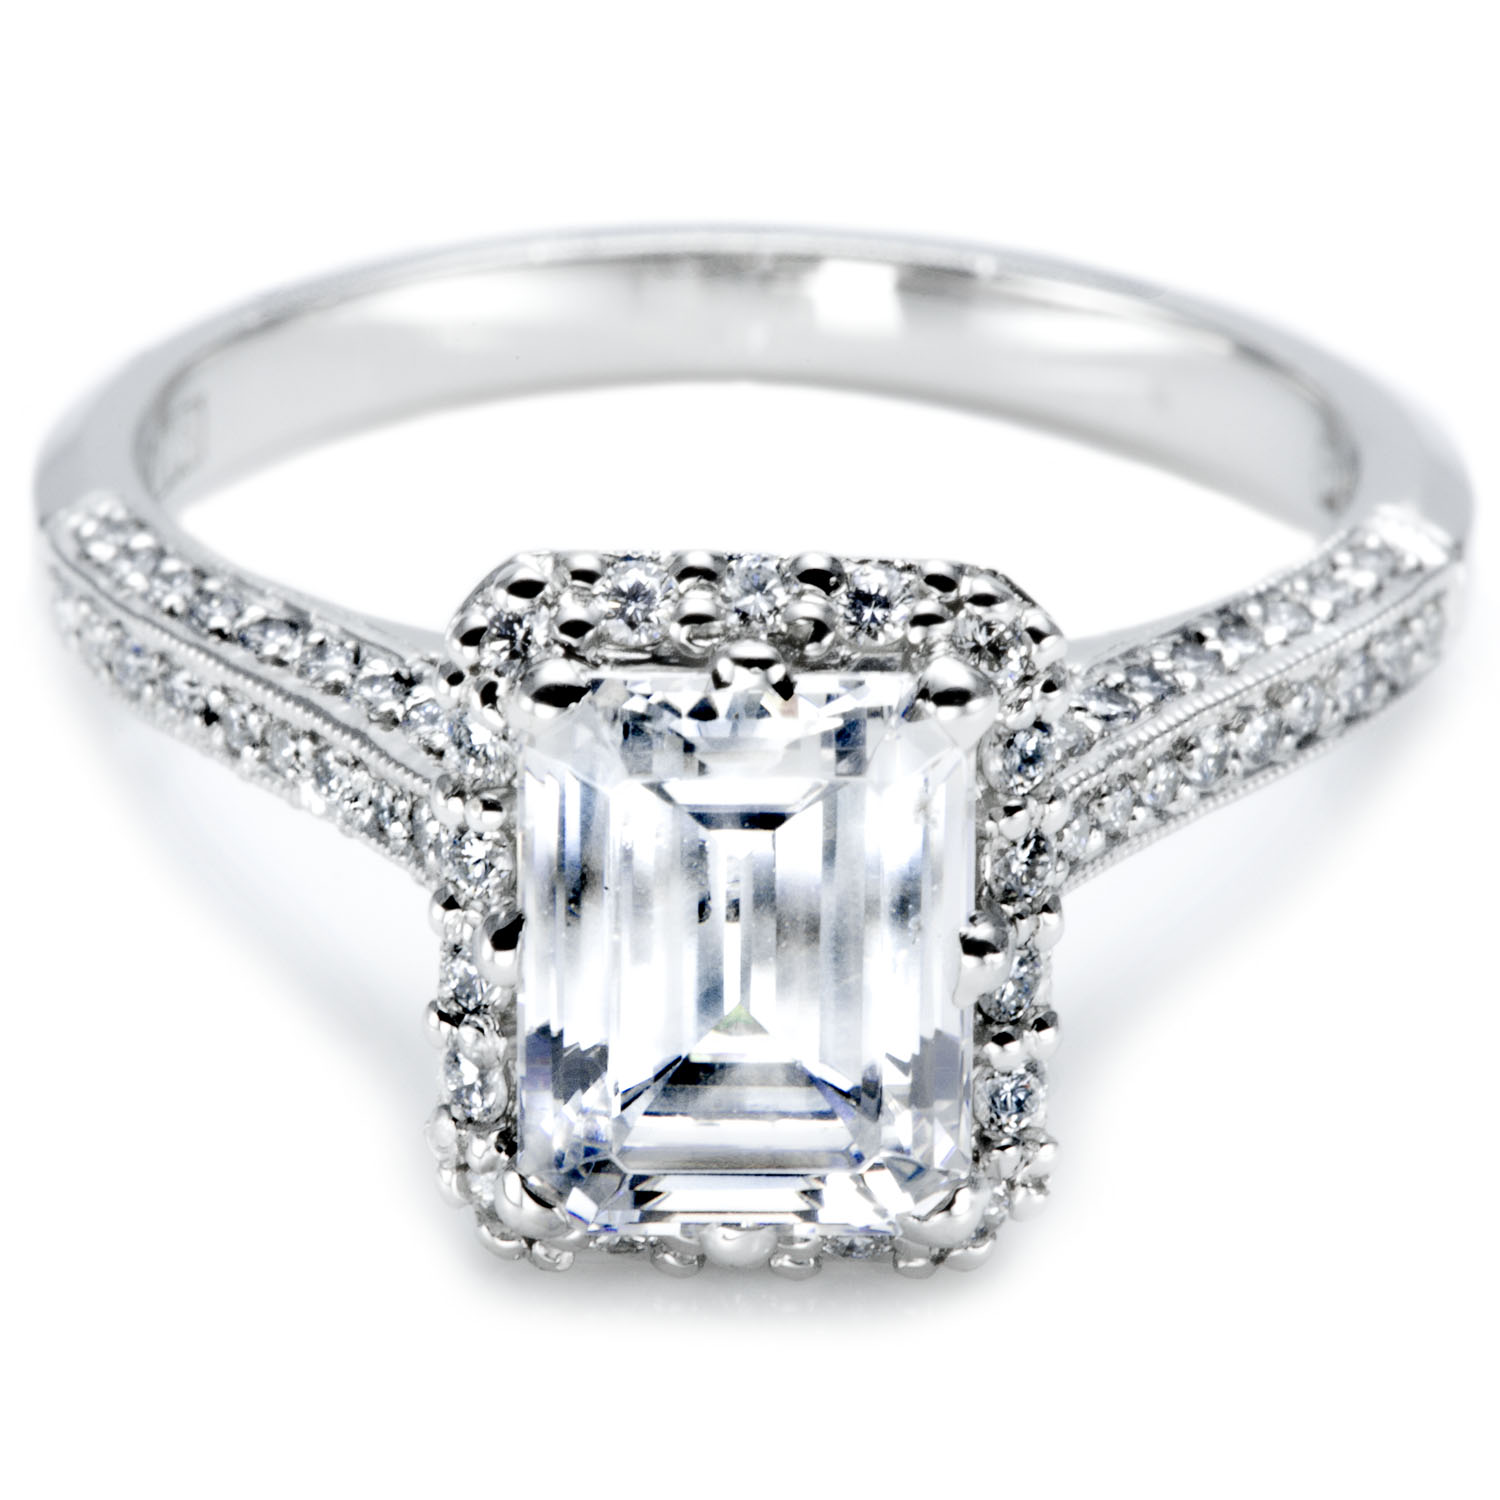 Gorgeous Tacori Emerald Engagement Rings Have your Dream Wedding